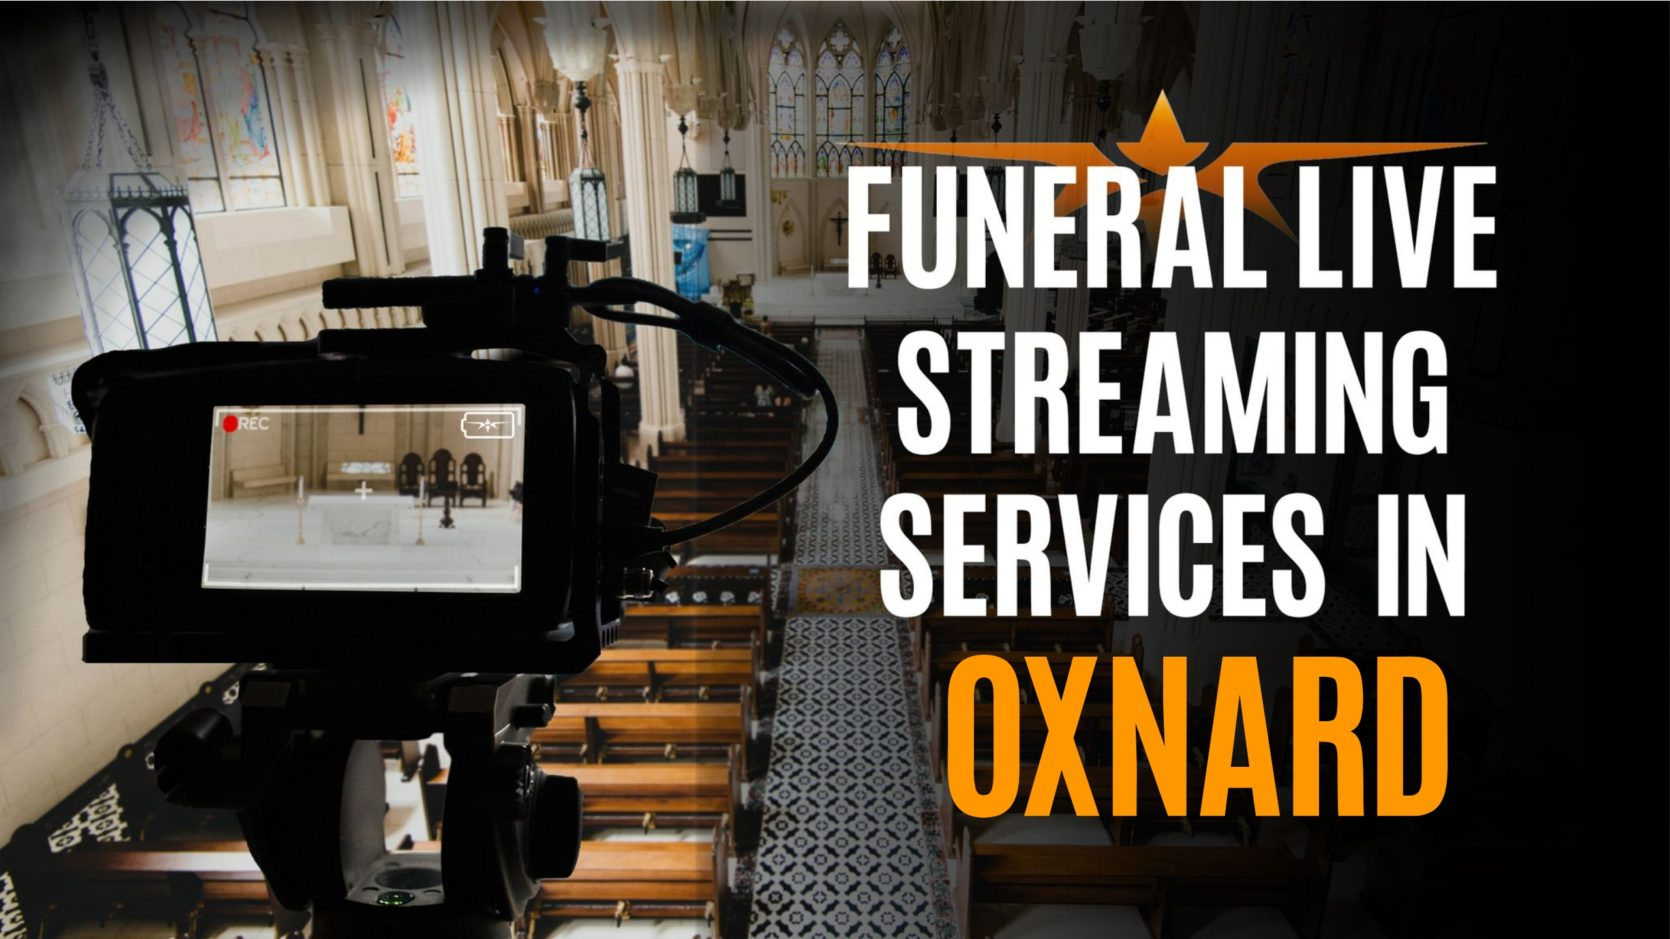 Funeral Live Streaming Services in Oxnard